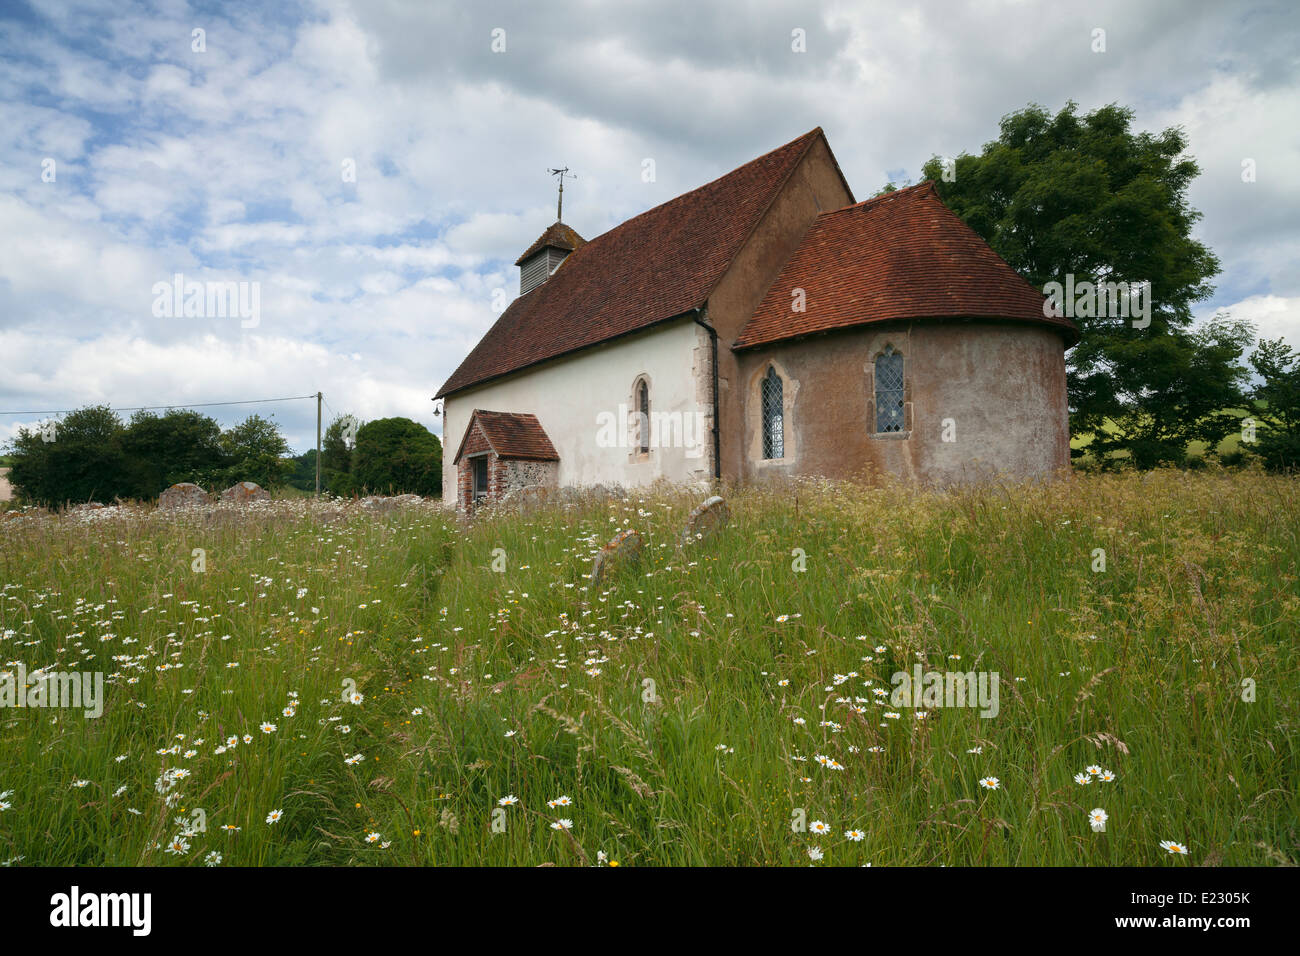 The 12th century Church of St Mary the Virgin in Upwaltham, West Sussex, England, UK Stock Photo